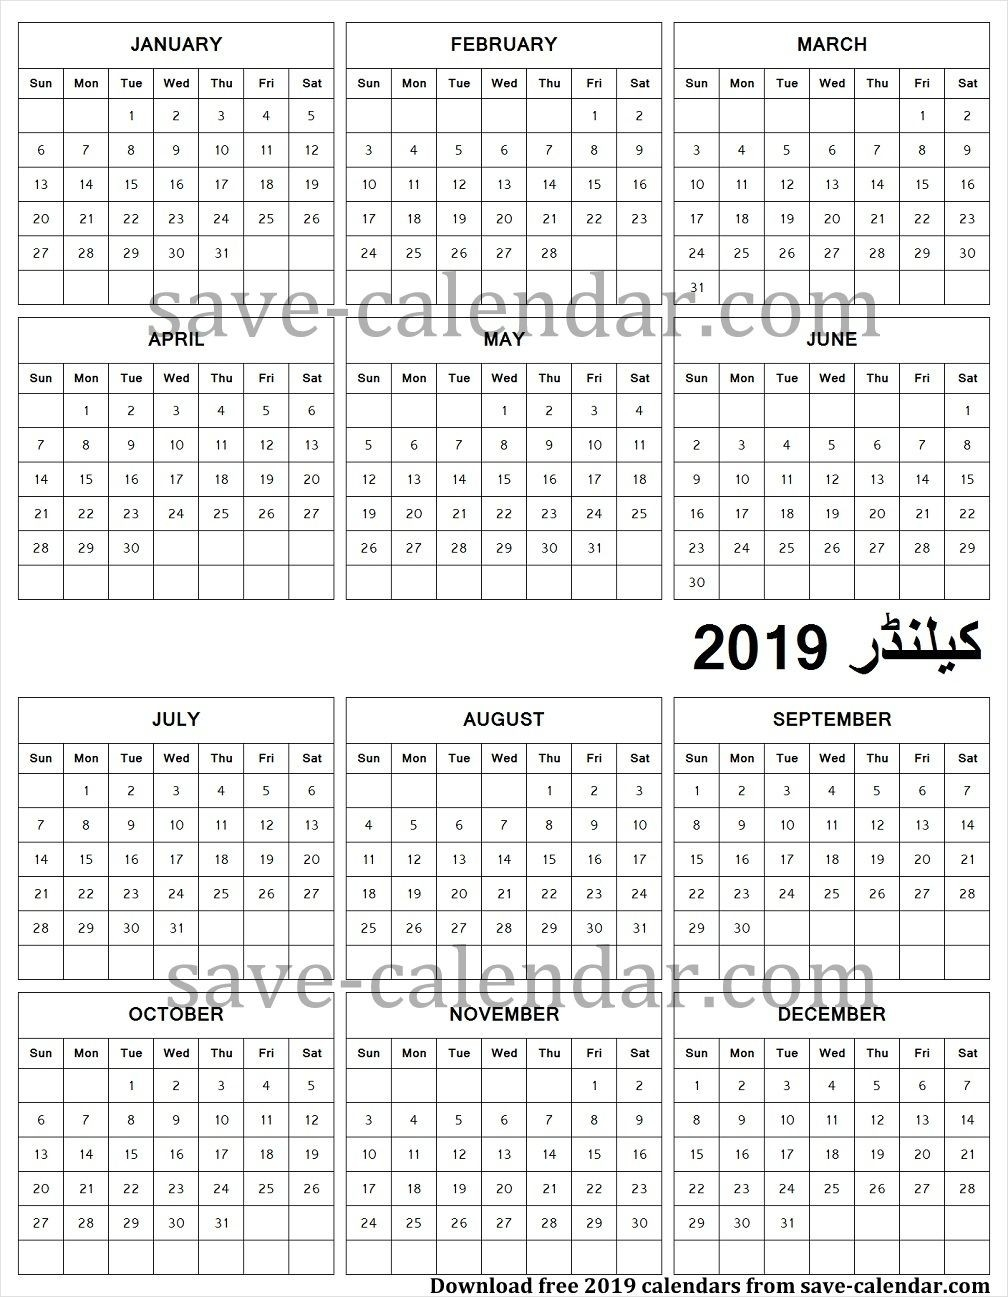 Calendar 2019 Urdu | Urdu Calendar 2019 | Yearly Calendar-January 2020 Calendar In Urdu